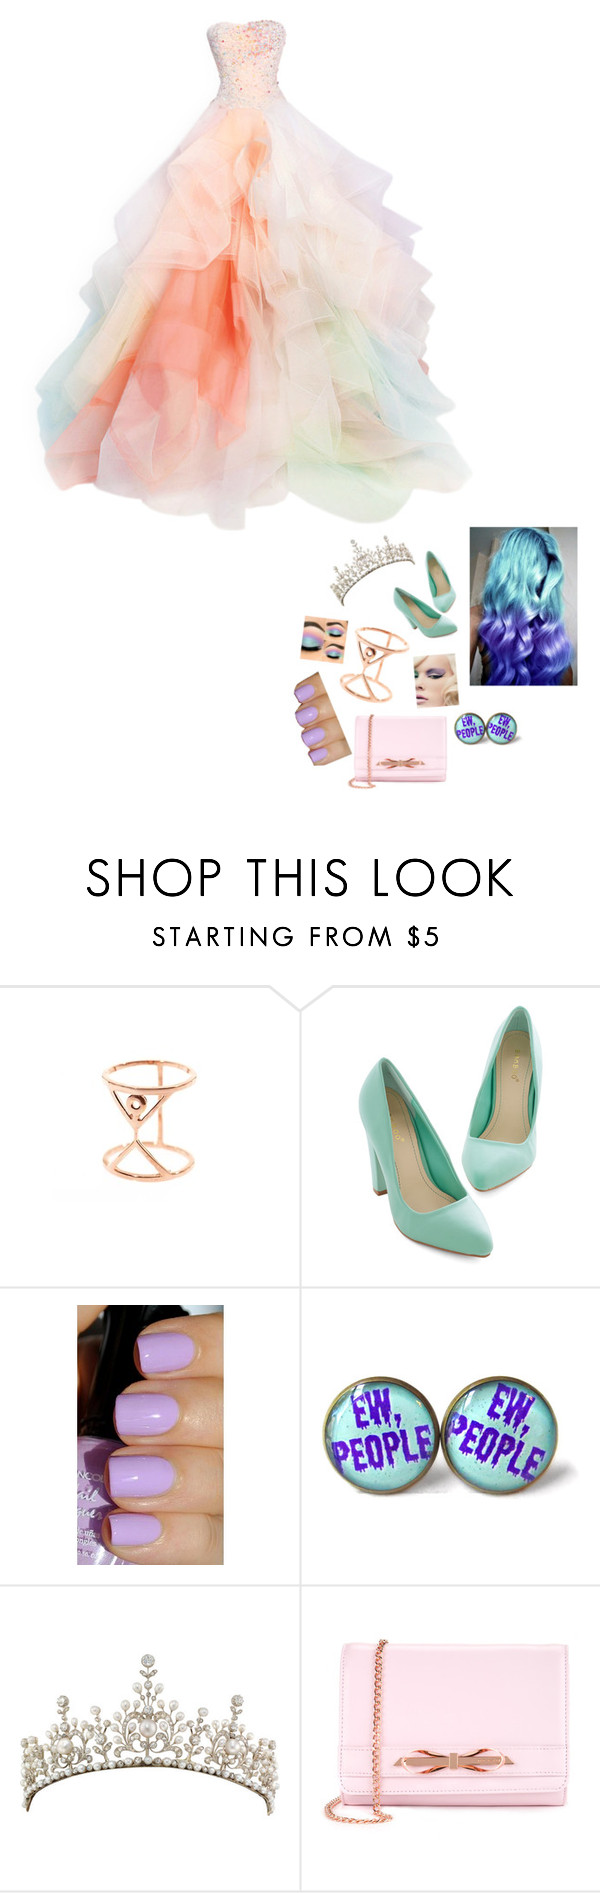 """Pastel princess"" by undead-charms ❤ liked on Polyvore featuring moda, Aamaya by priyanka y Ted Baker"